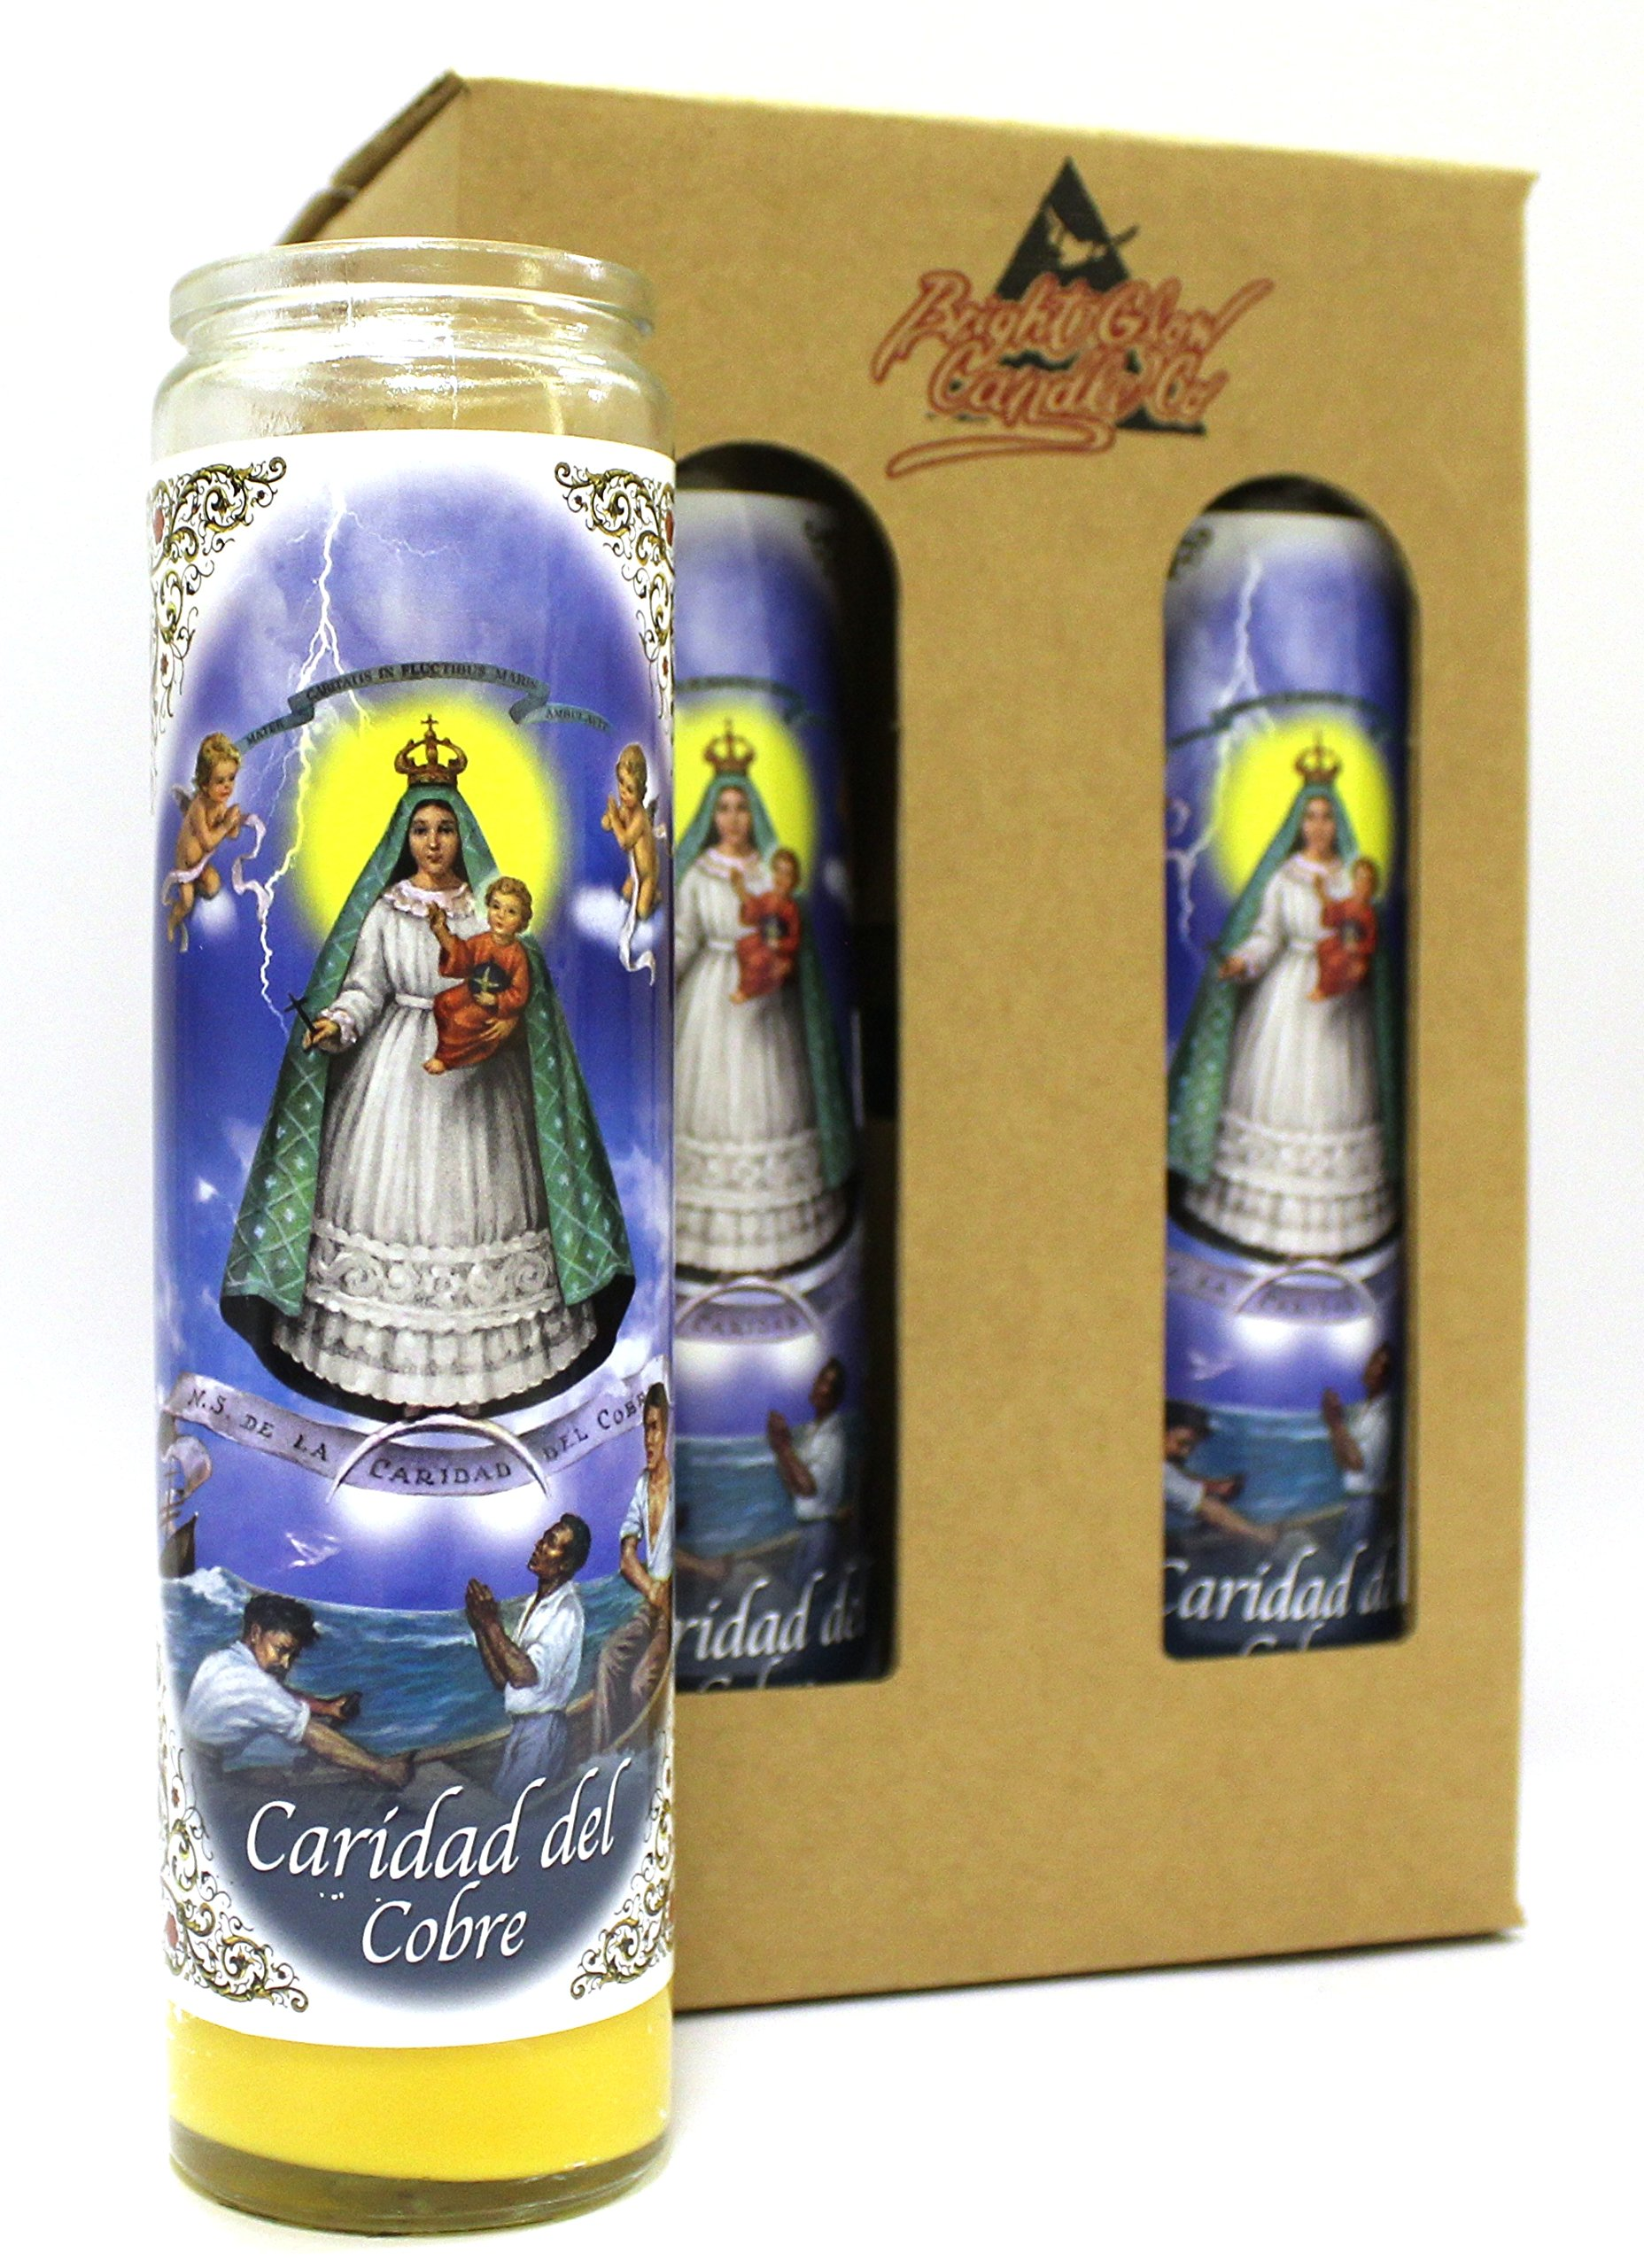 4-Pack Our Lady of Charity | 8'' Tall Unscented Religious Prayer Candles in Gift Box | Devotional | Spiritual | Virgen de la Caridad de Cobre Novena Vigil Candle, Yellow Wax | Christian Home Decor